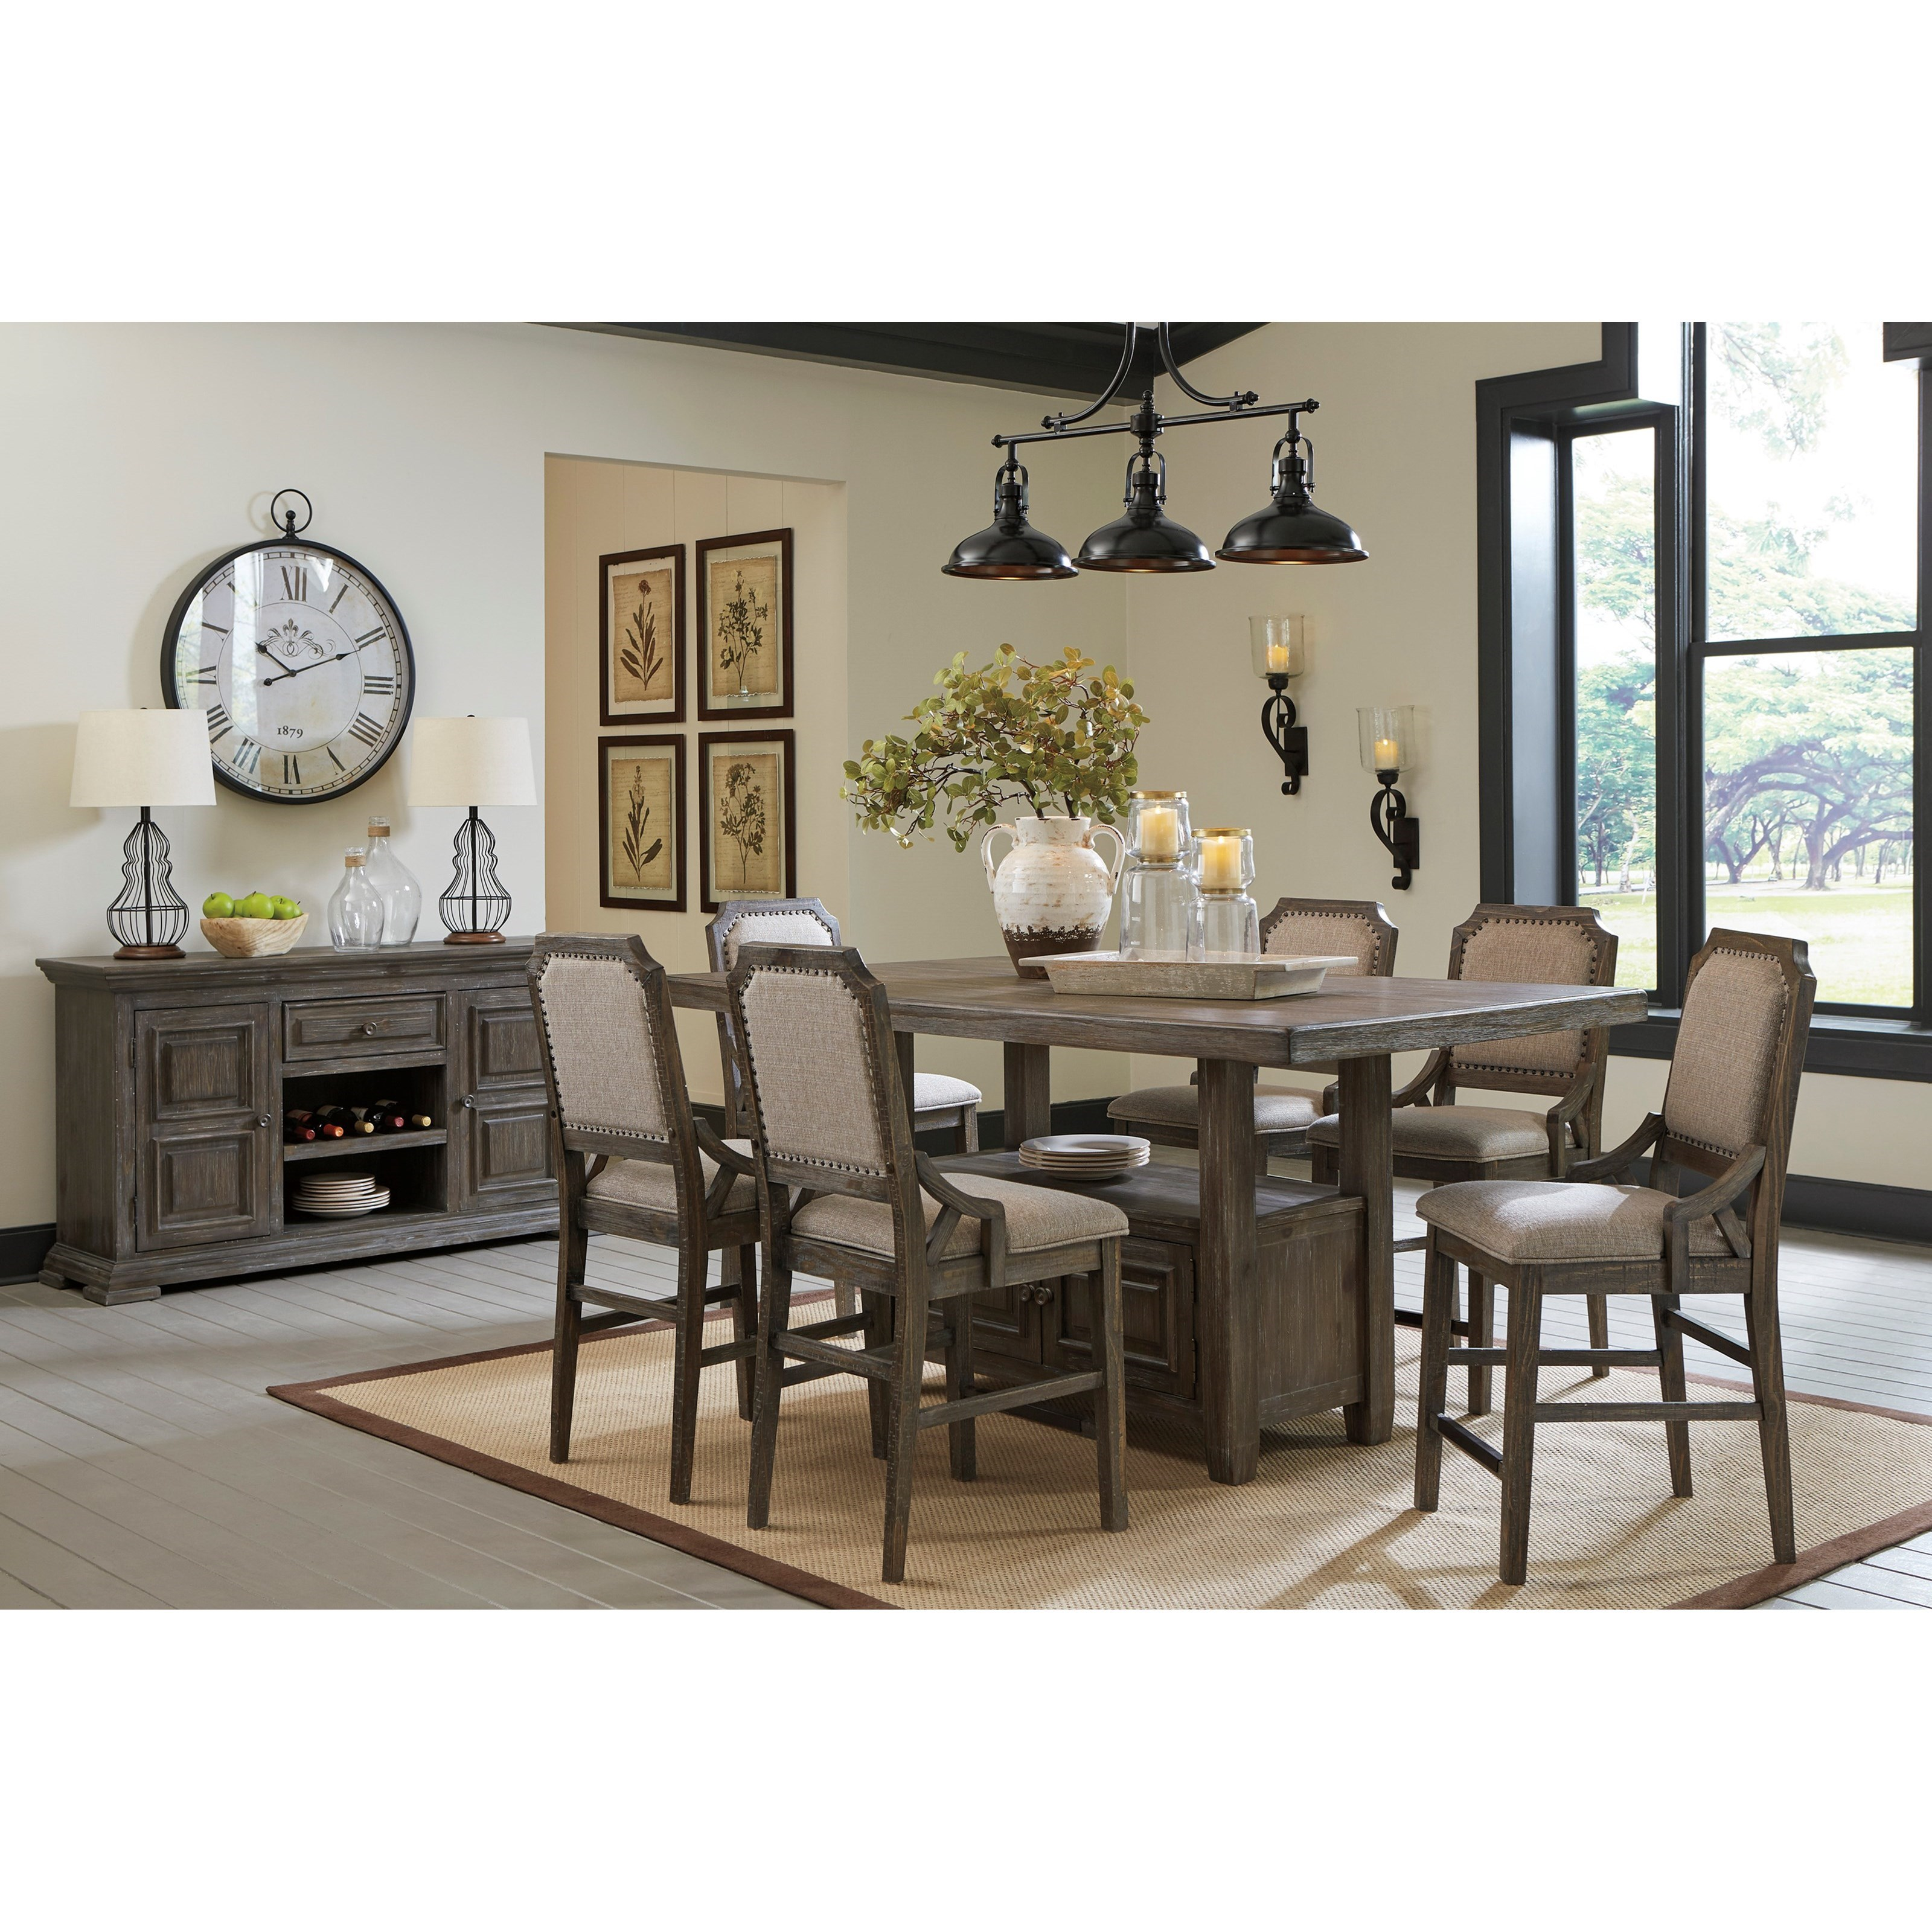 Wyndahl Dining Room Group by Signature Design by Ashley at Northeast Factory Direct